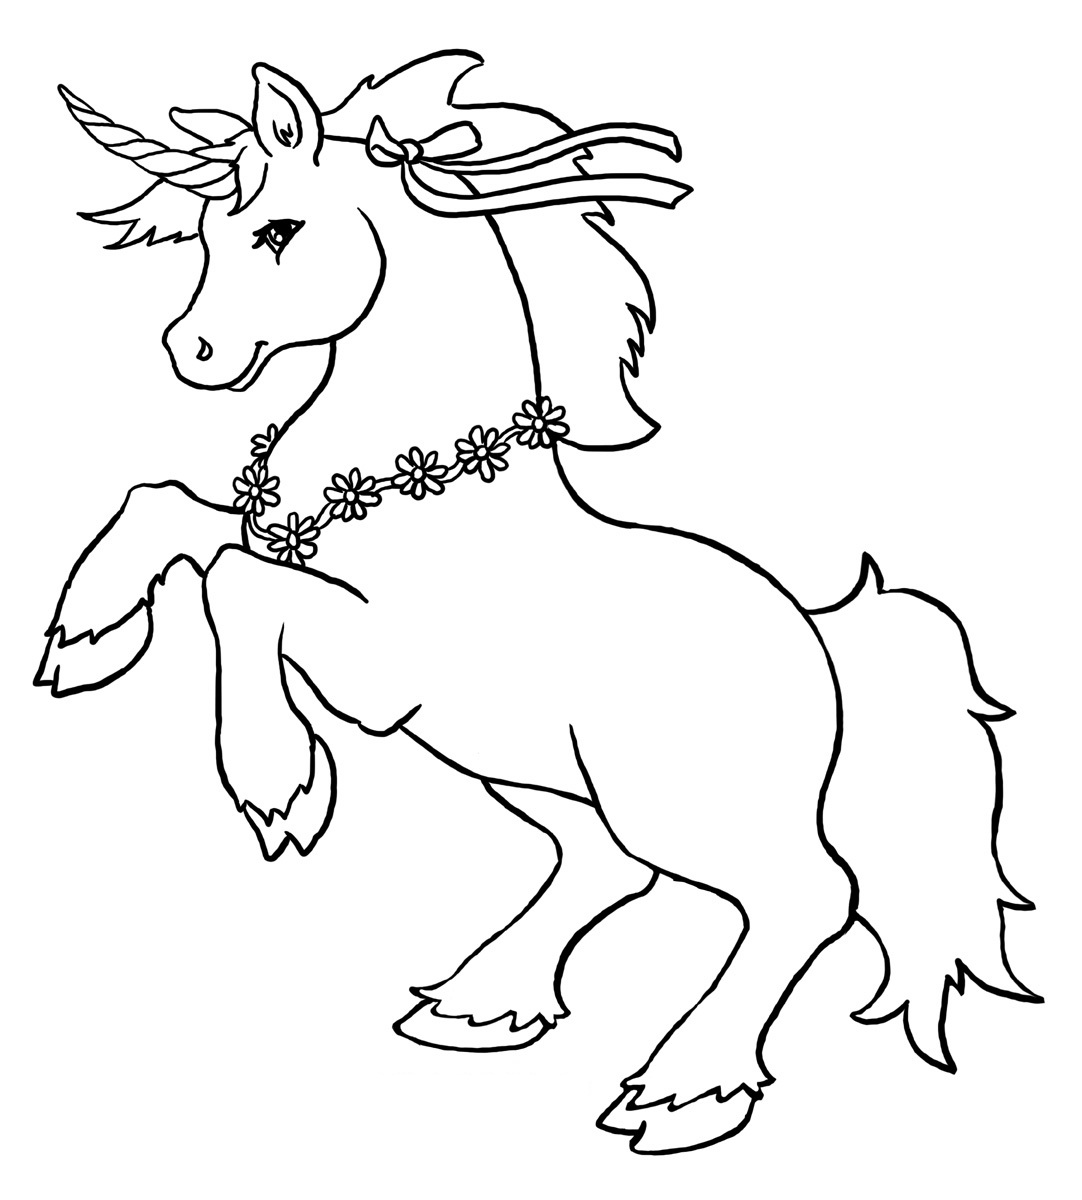 unicorn print out unicorn coloring pages free printable coloring home print unicorn out